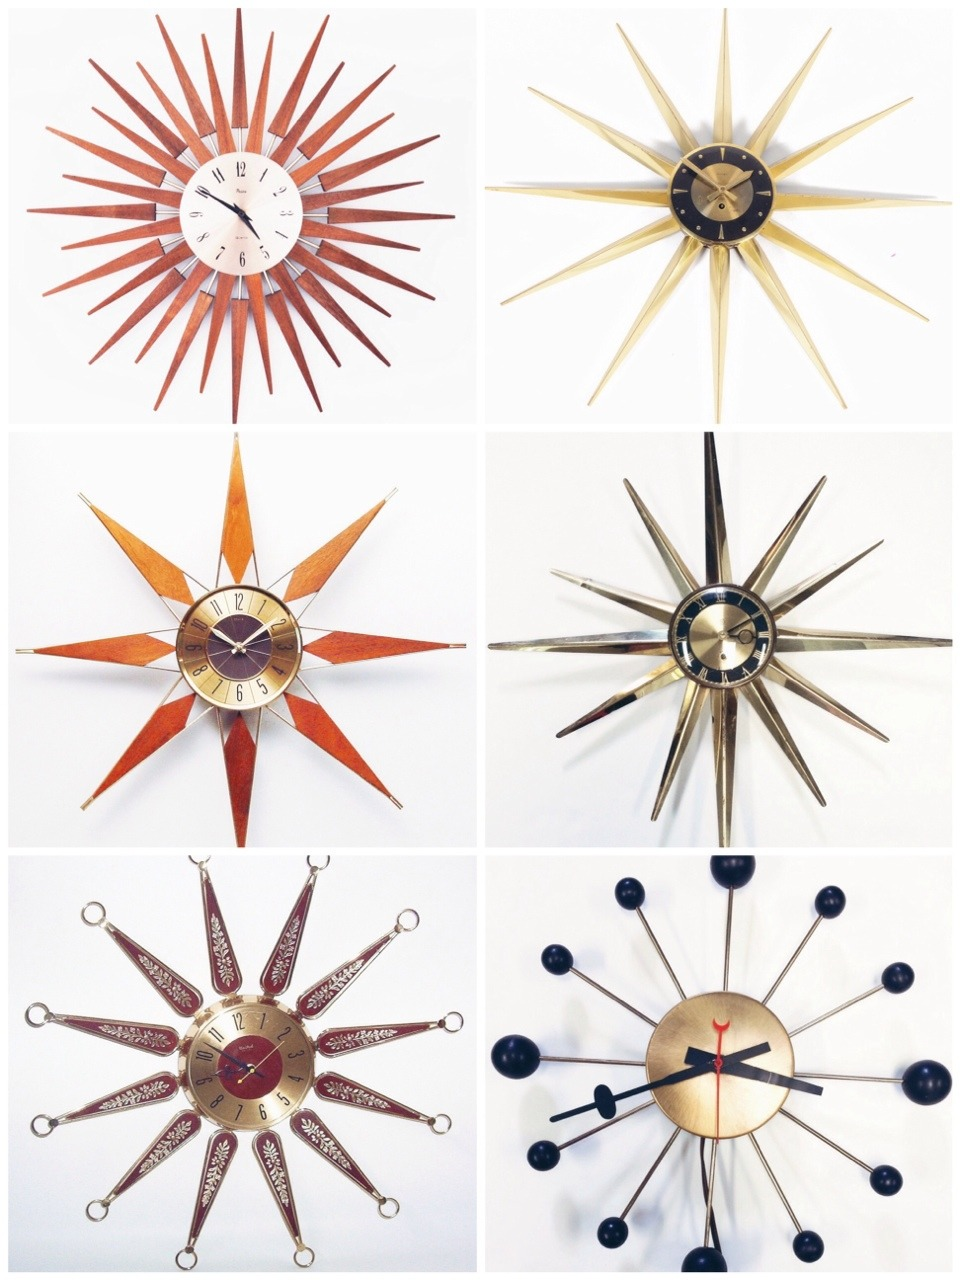 1960s-1970s Starburst Clocks